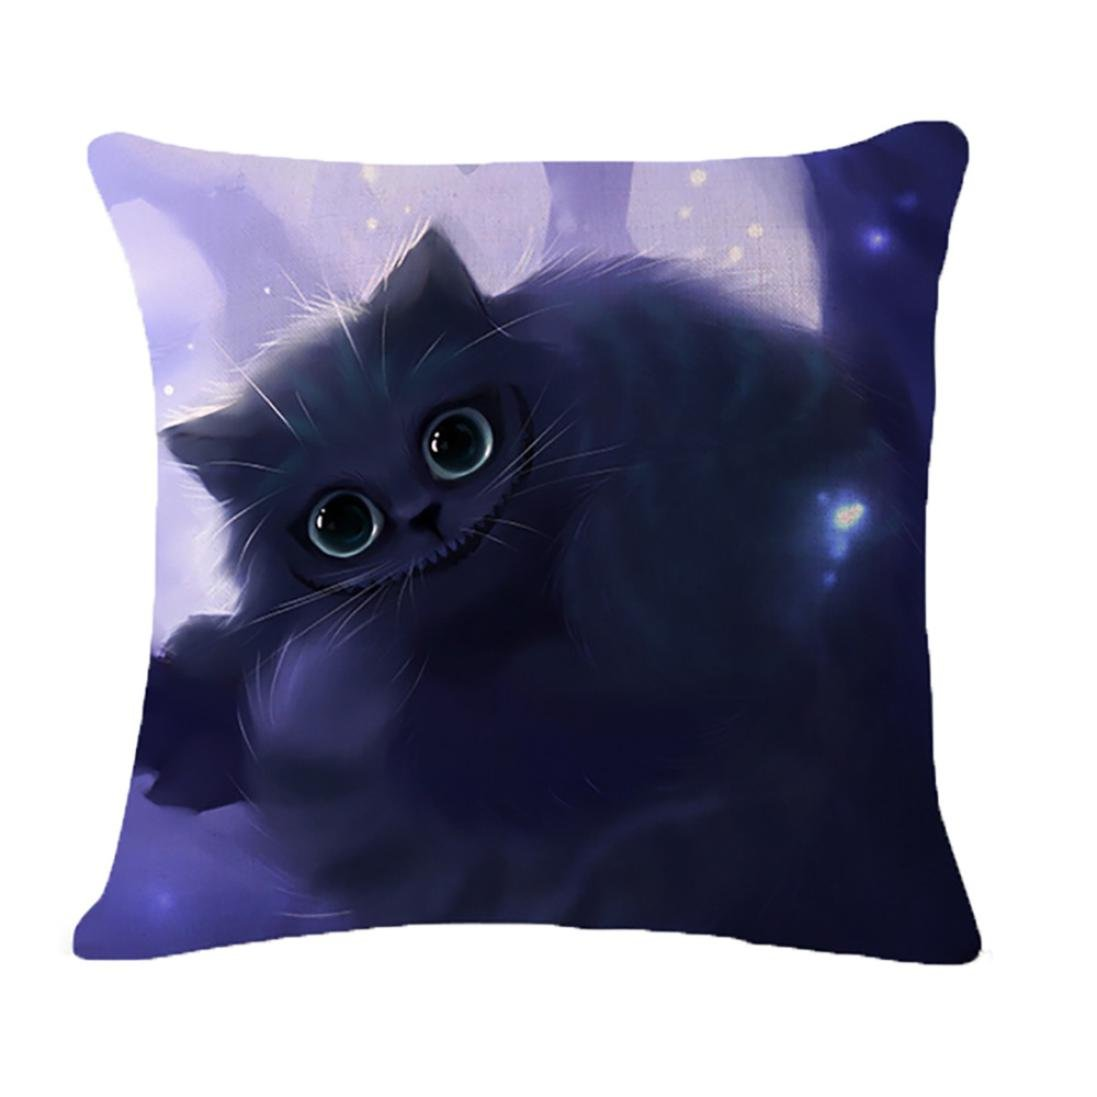 45 * 45cm Pillow Case, HUHU833 3D Black Cat Cushion Cover Cotton Linen Square Throw Pillow Cover (A)